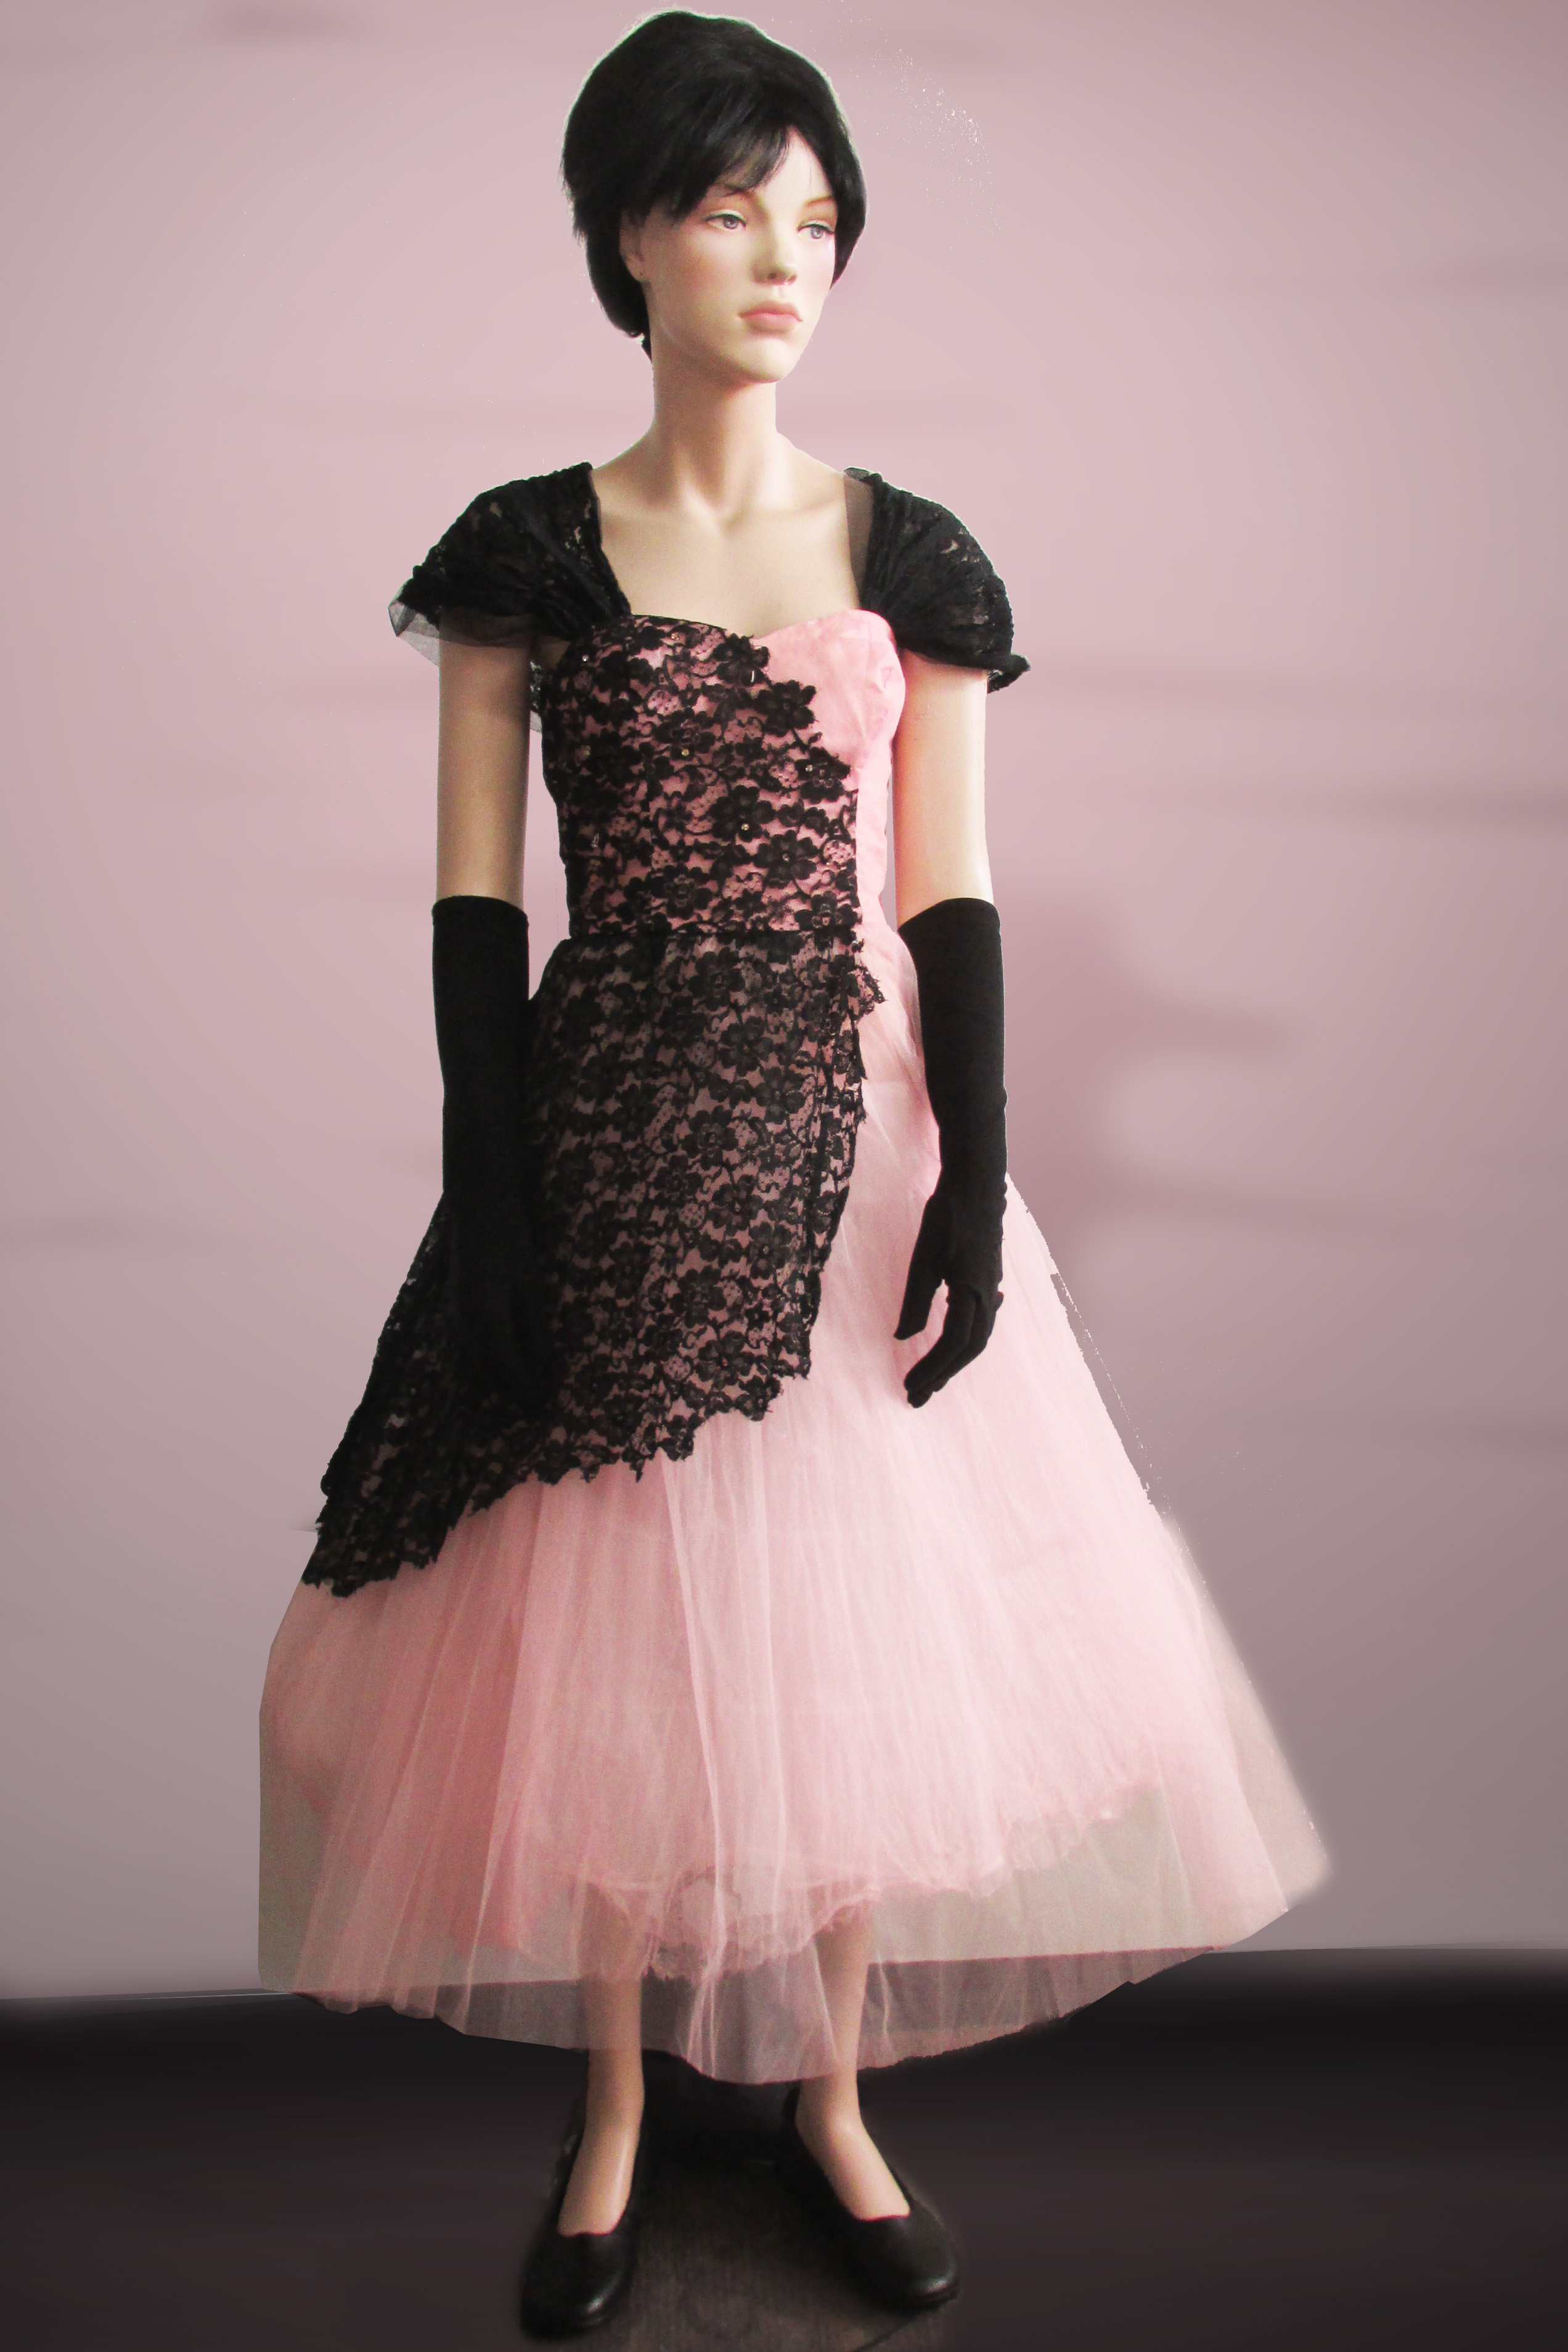 Pink Tulle with Black Lace 1950s